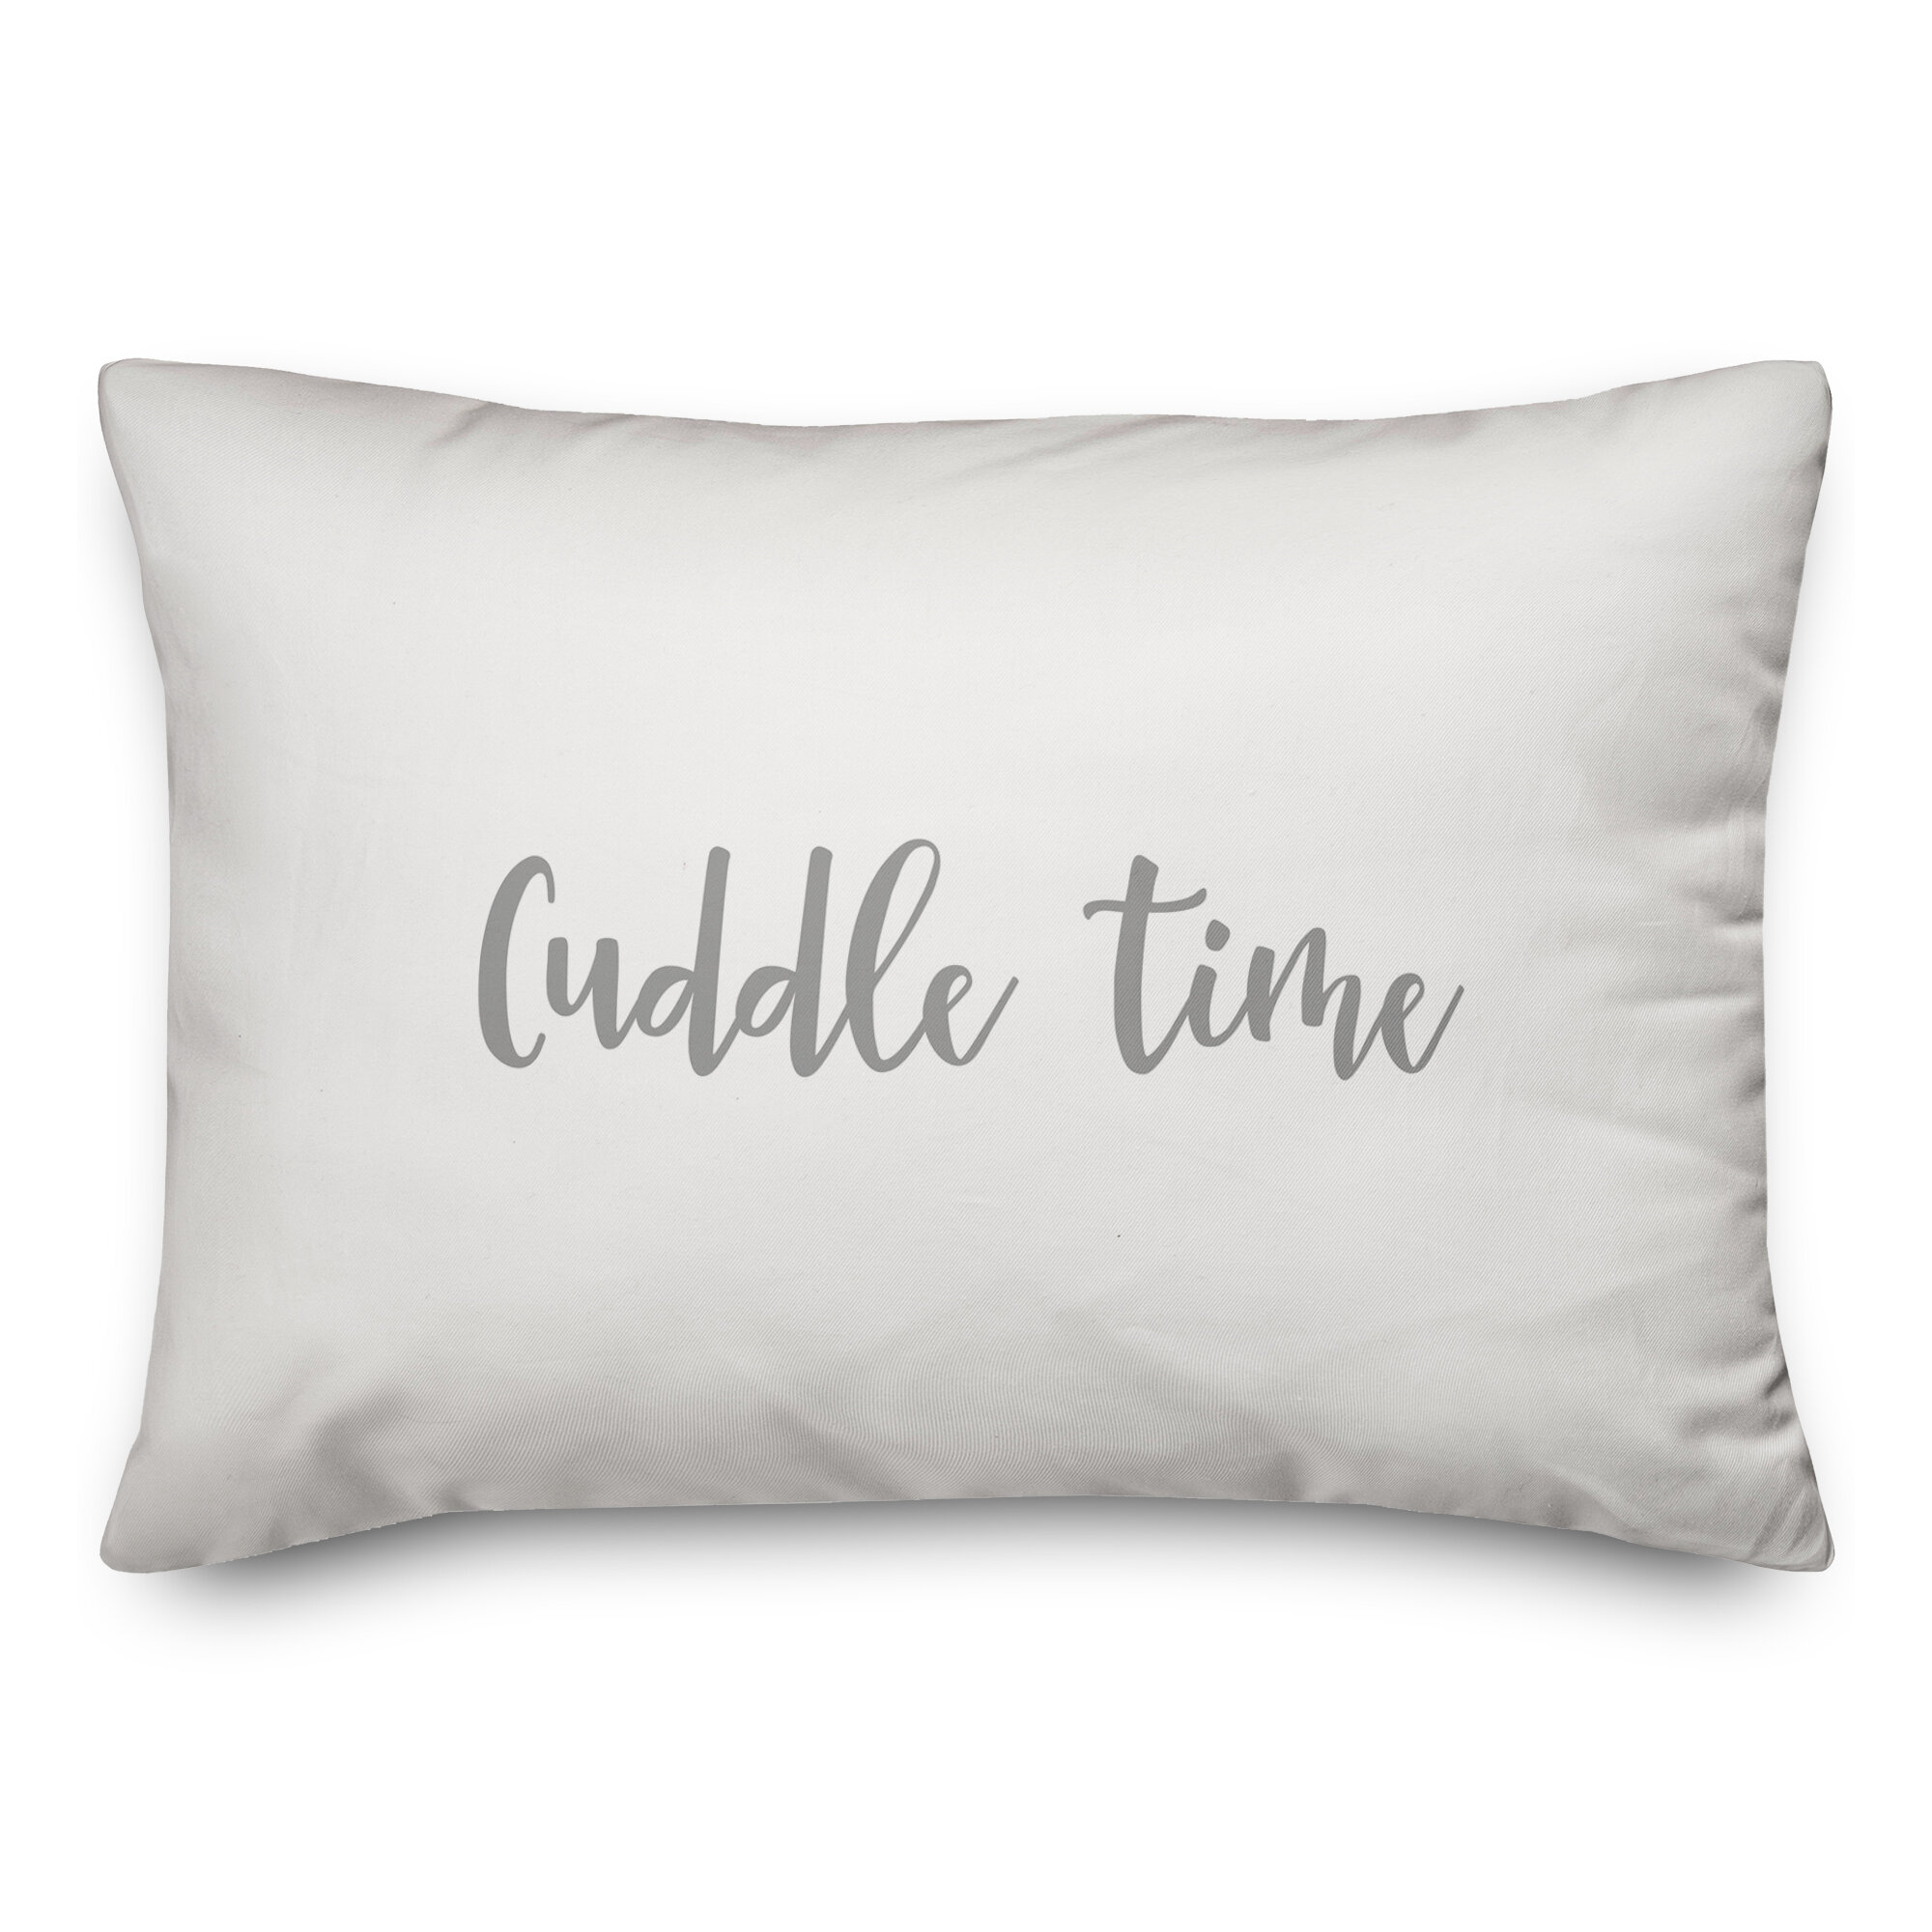 Ebern Designs The Lyell Collection Cuddle Time Throw Pillow Wayfair